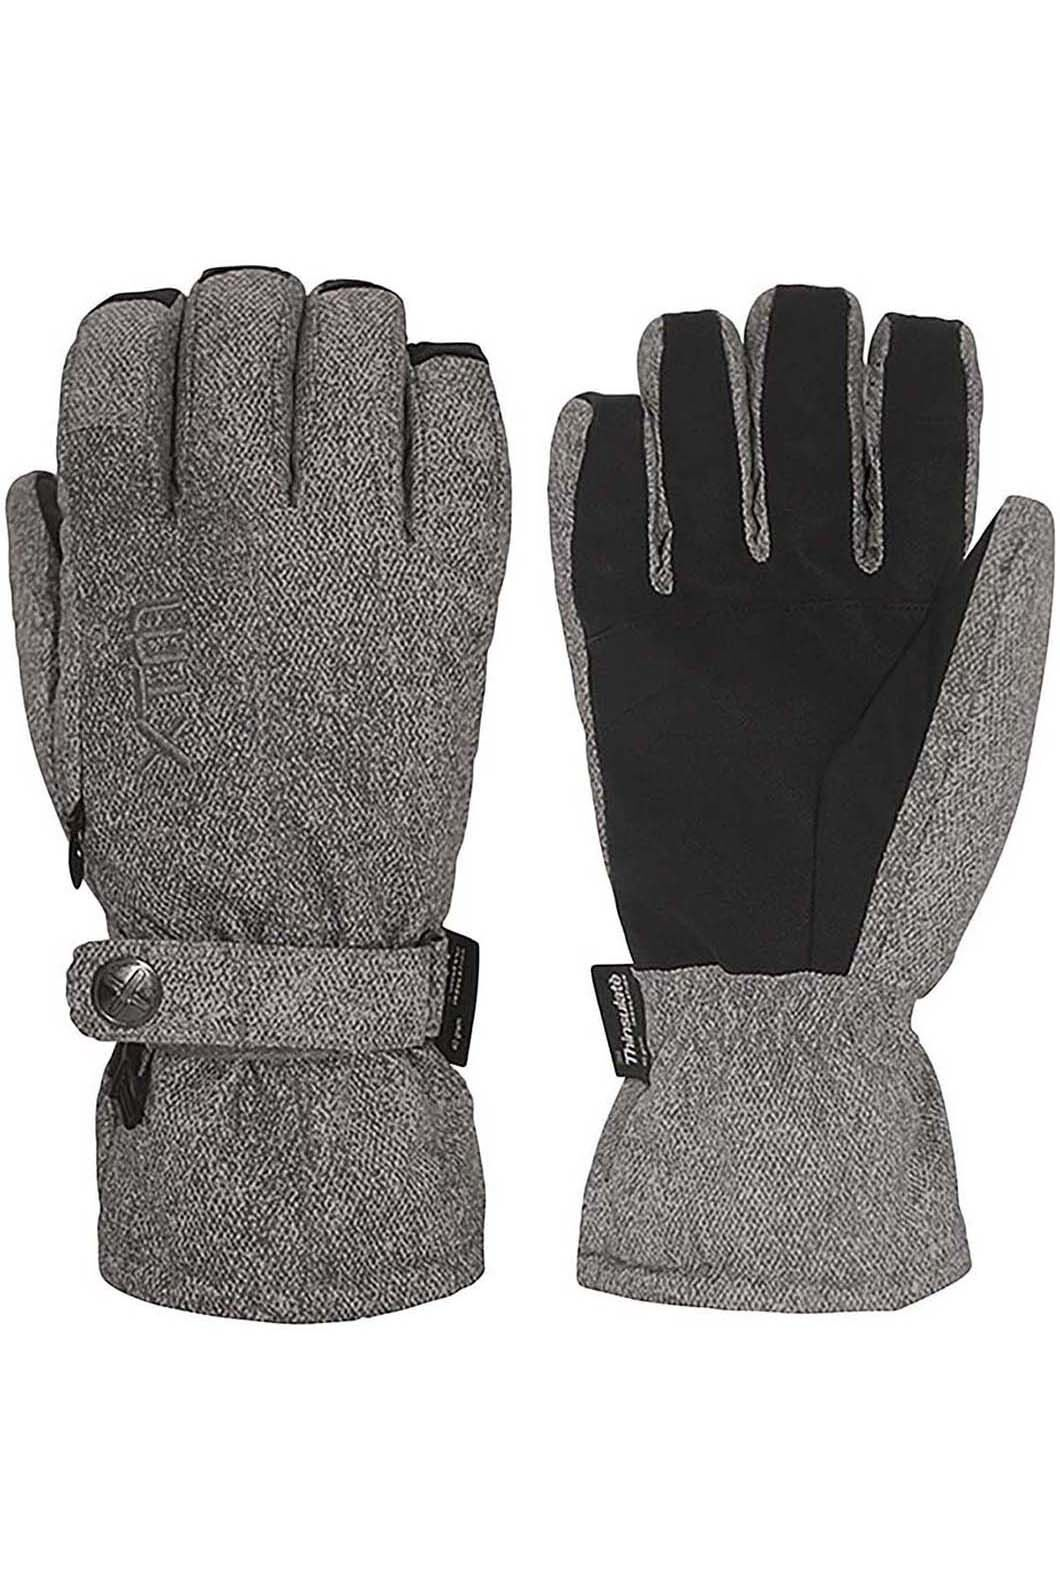 XTM Sapporo Glove - Women's, Light Grey Marle, hi-res